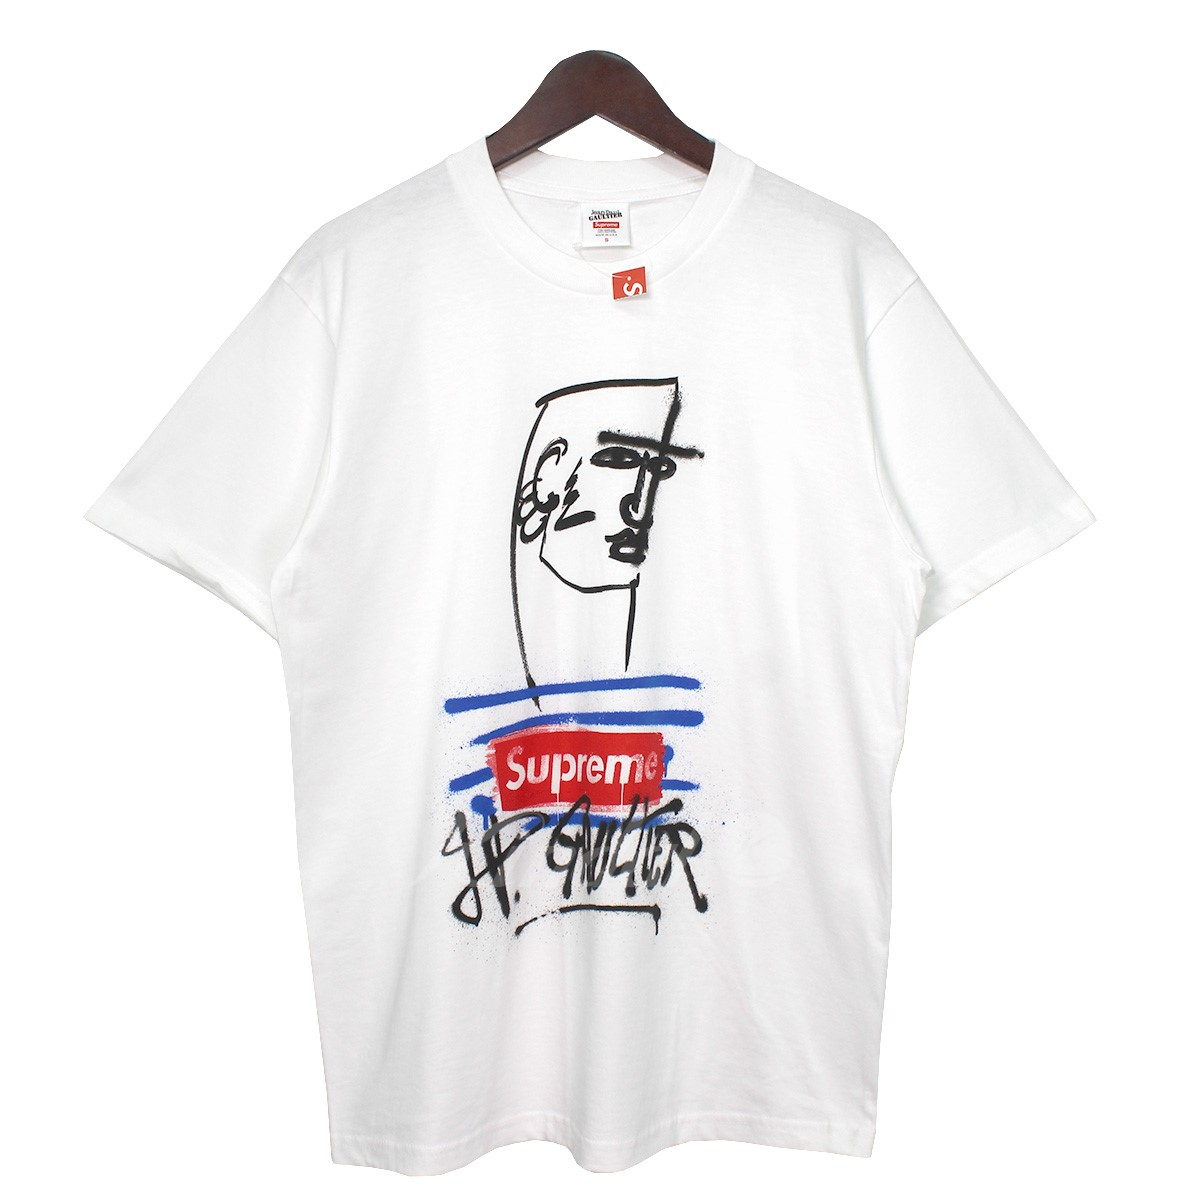 offer discounts new lower prices official supplier Supreme X Jean Paul Gaultier 19SS Jean Paul Gaultier Tee box logo T-shirt  white size: S (シュプリーム X ジャンポールゴルチェ)